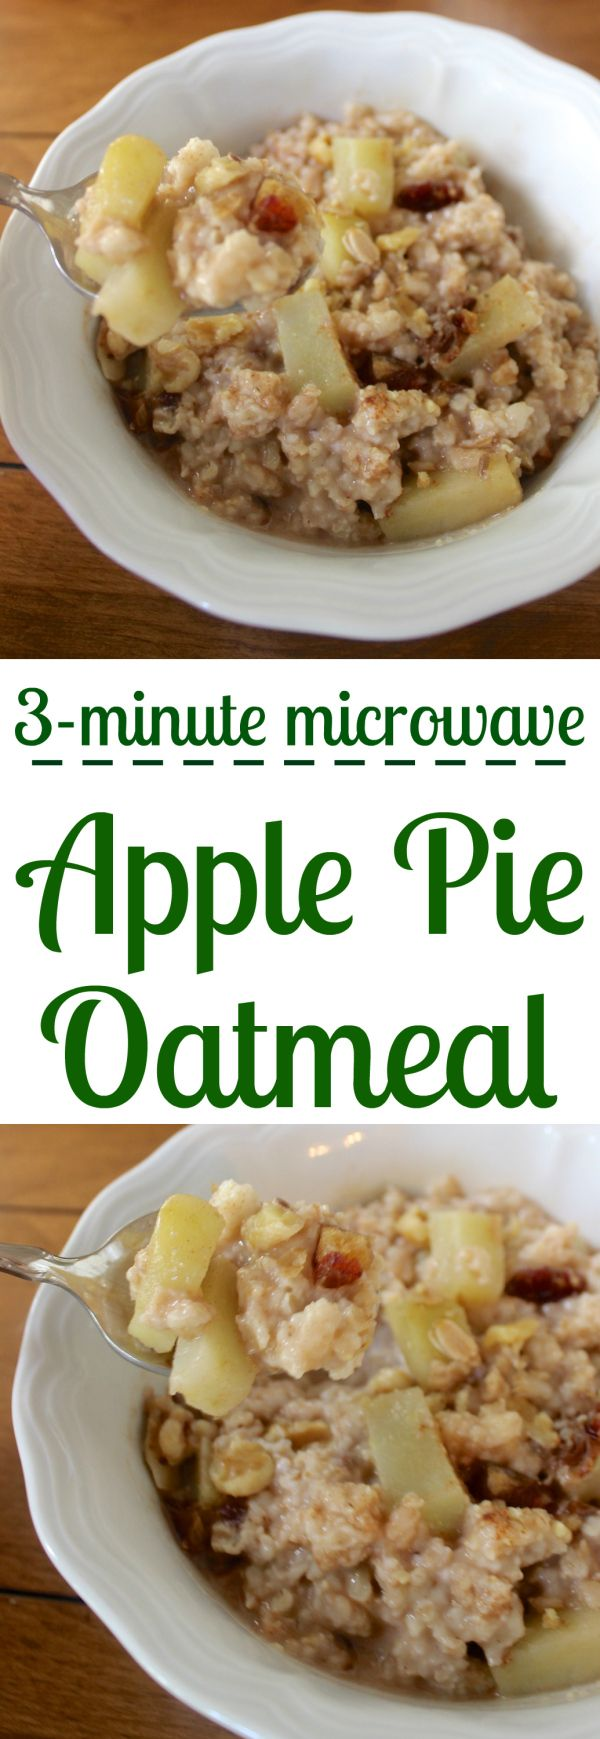 With cinnamon, walnuts, and raisins, this apple pie oatmeal is healthy breakfast comfort food!